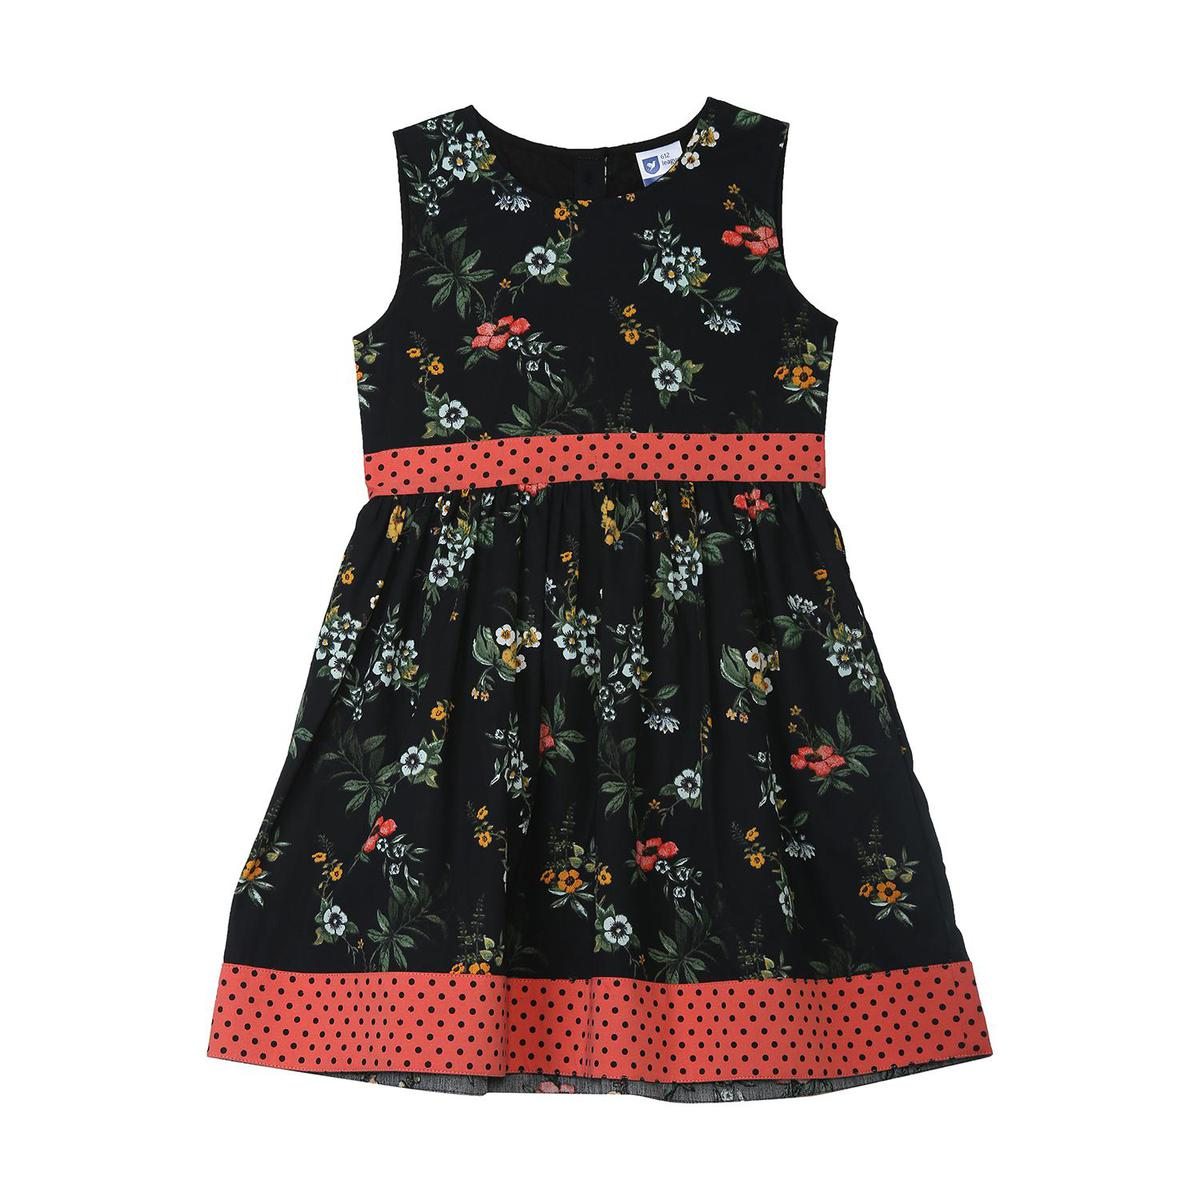 612 League - Black Colored Dot Print With Pocket Tops For Girls